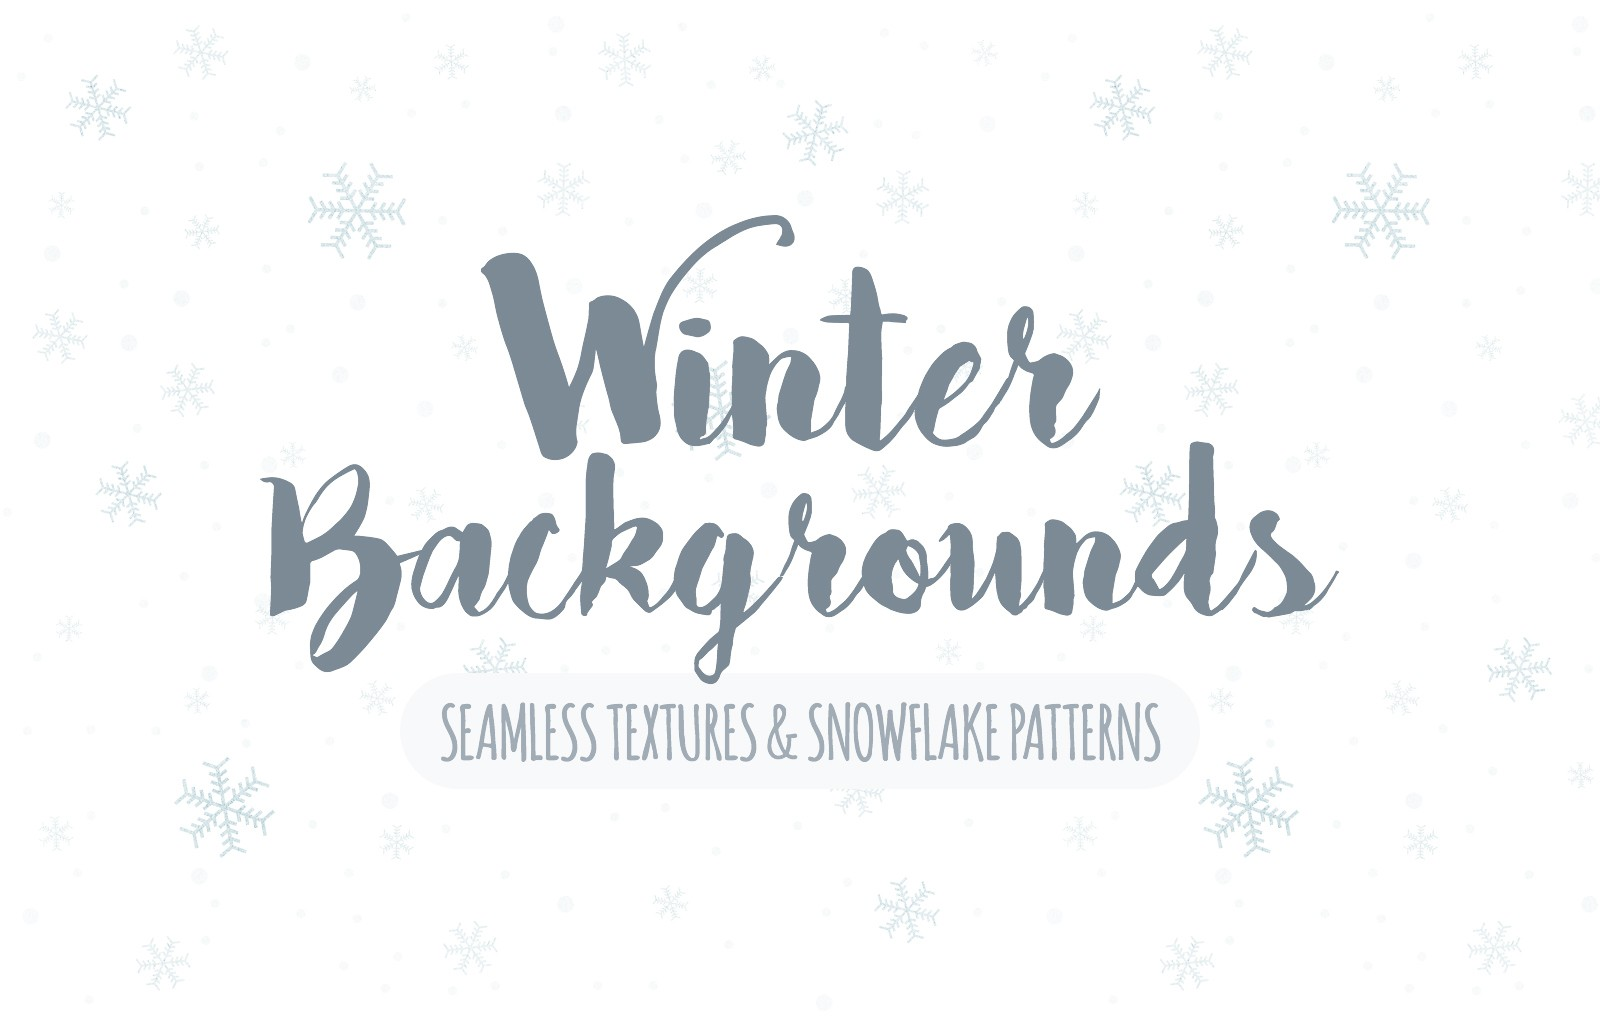 Seamless Winter Snowflake Backgrounds Preview 1